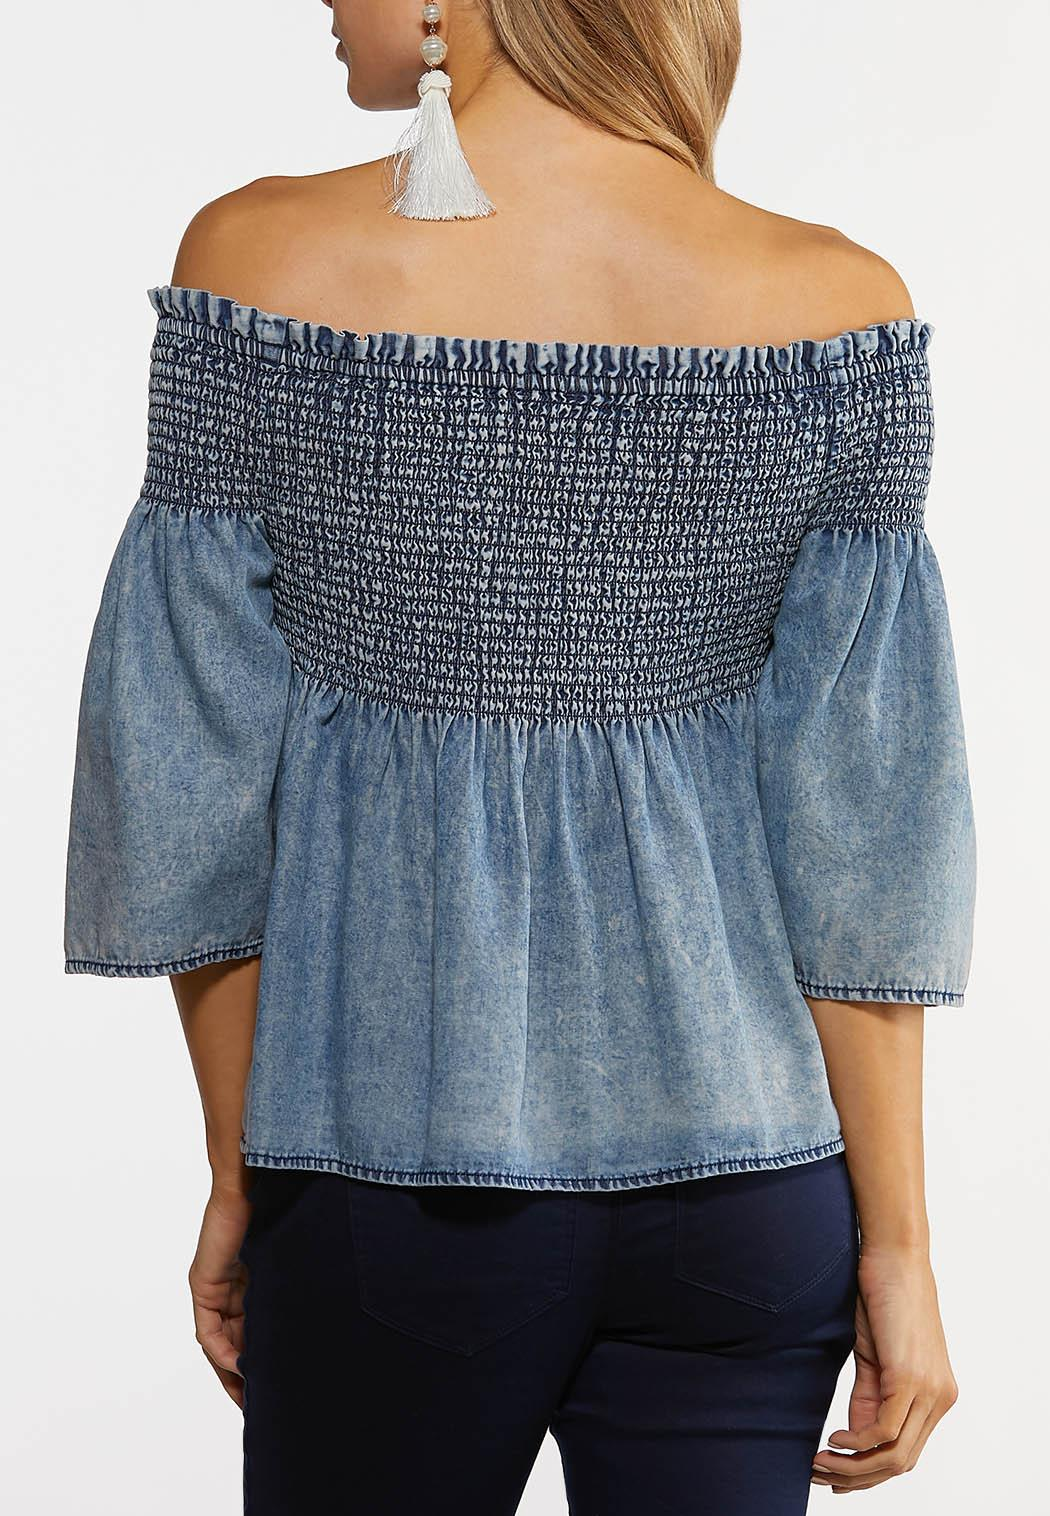 Denim Poet Top (Item #44182713)